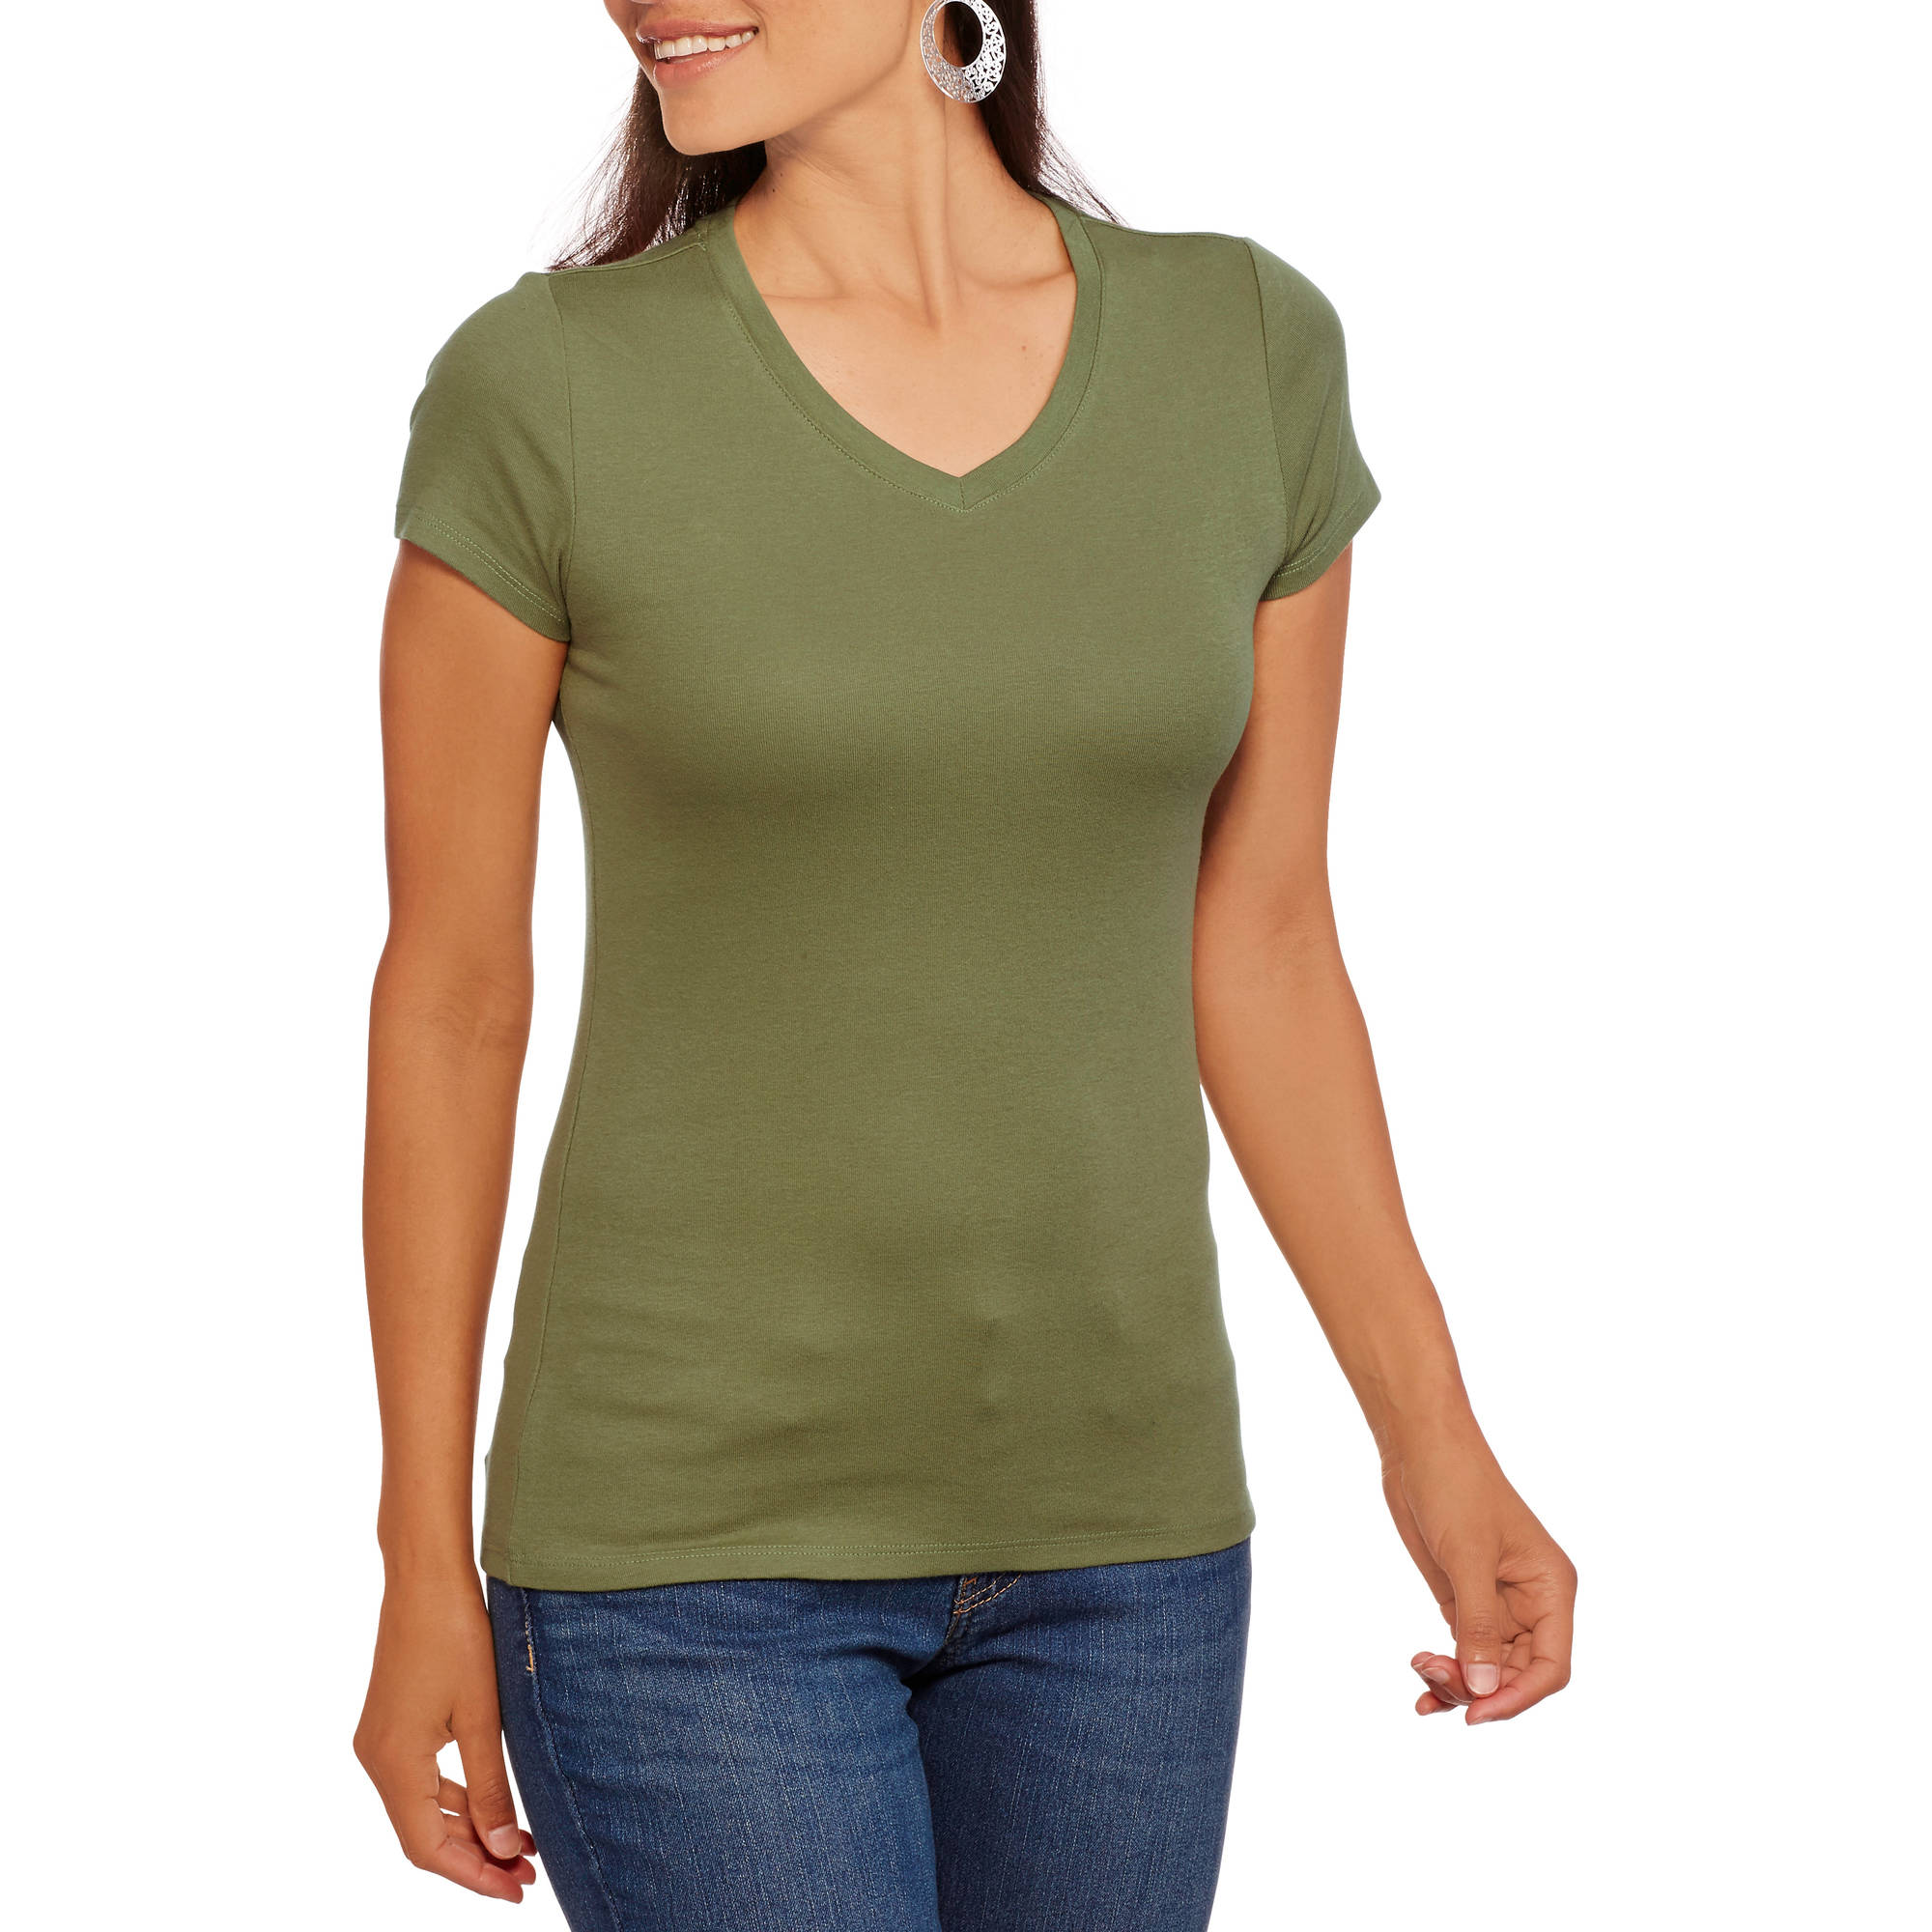 Faded Glory Women's Short Sleeve Essential V-Neck Tee